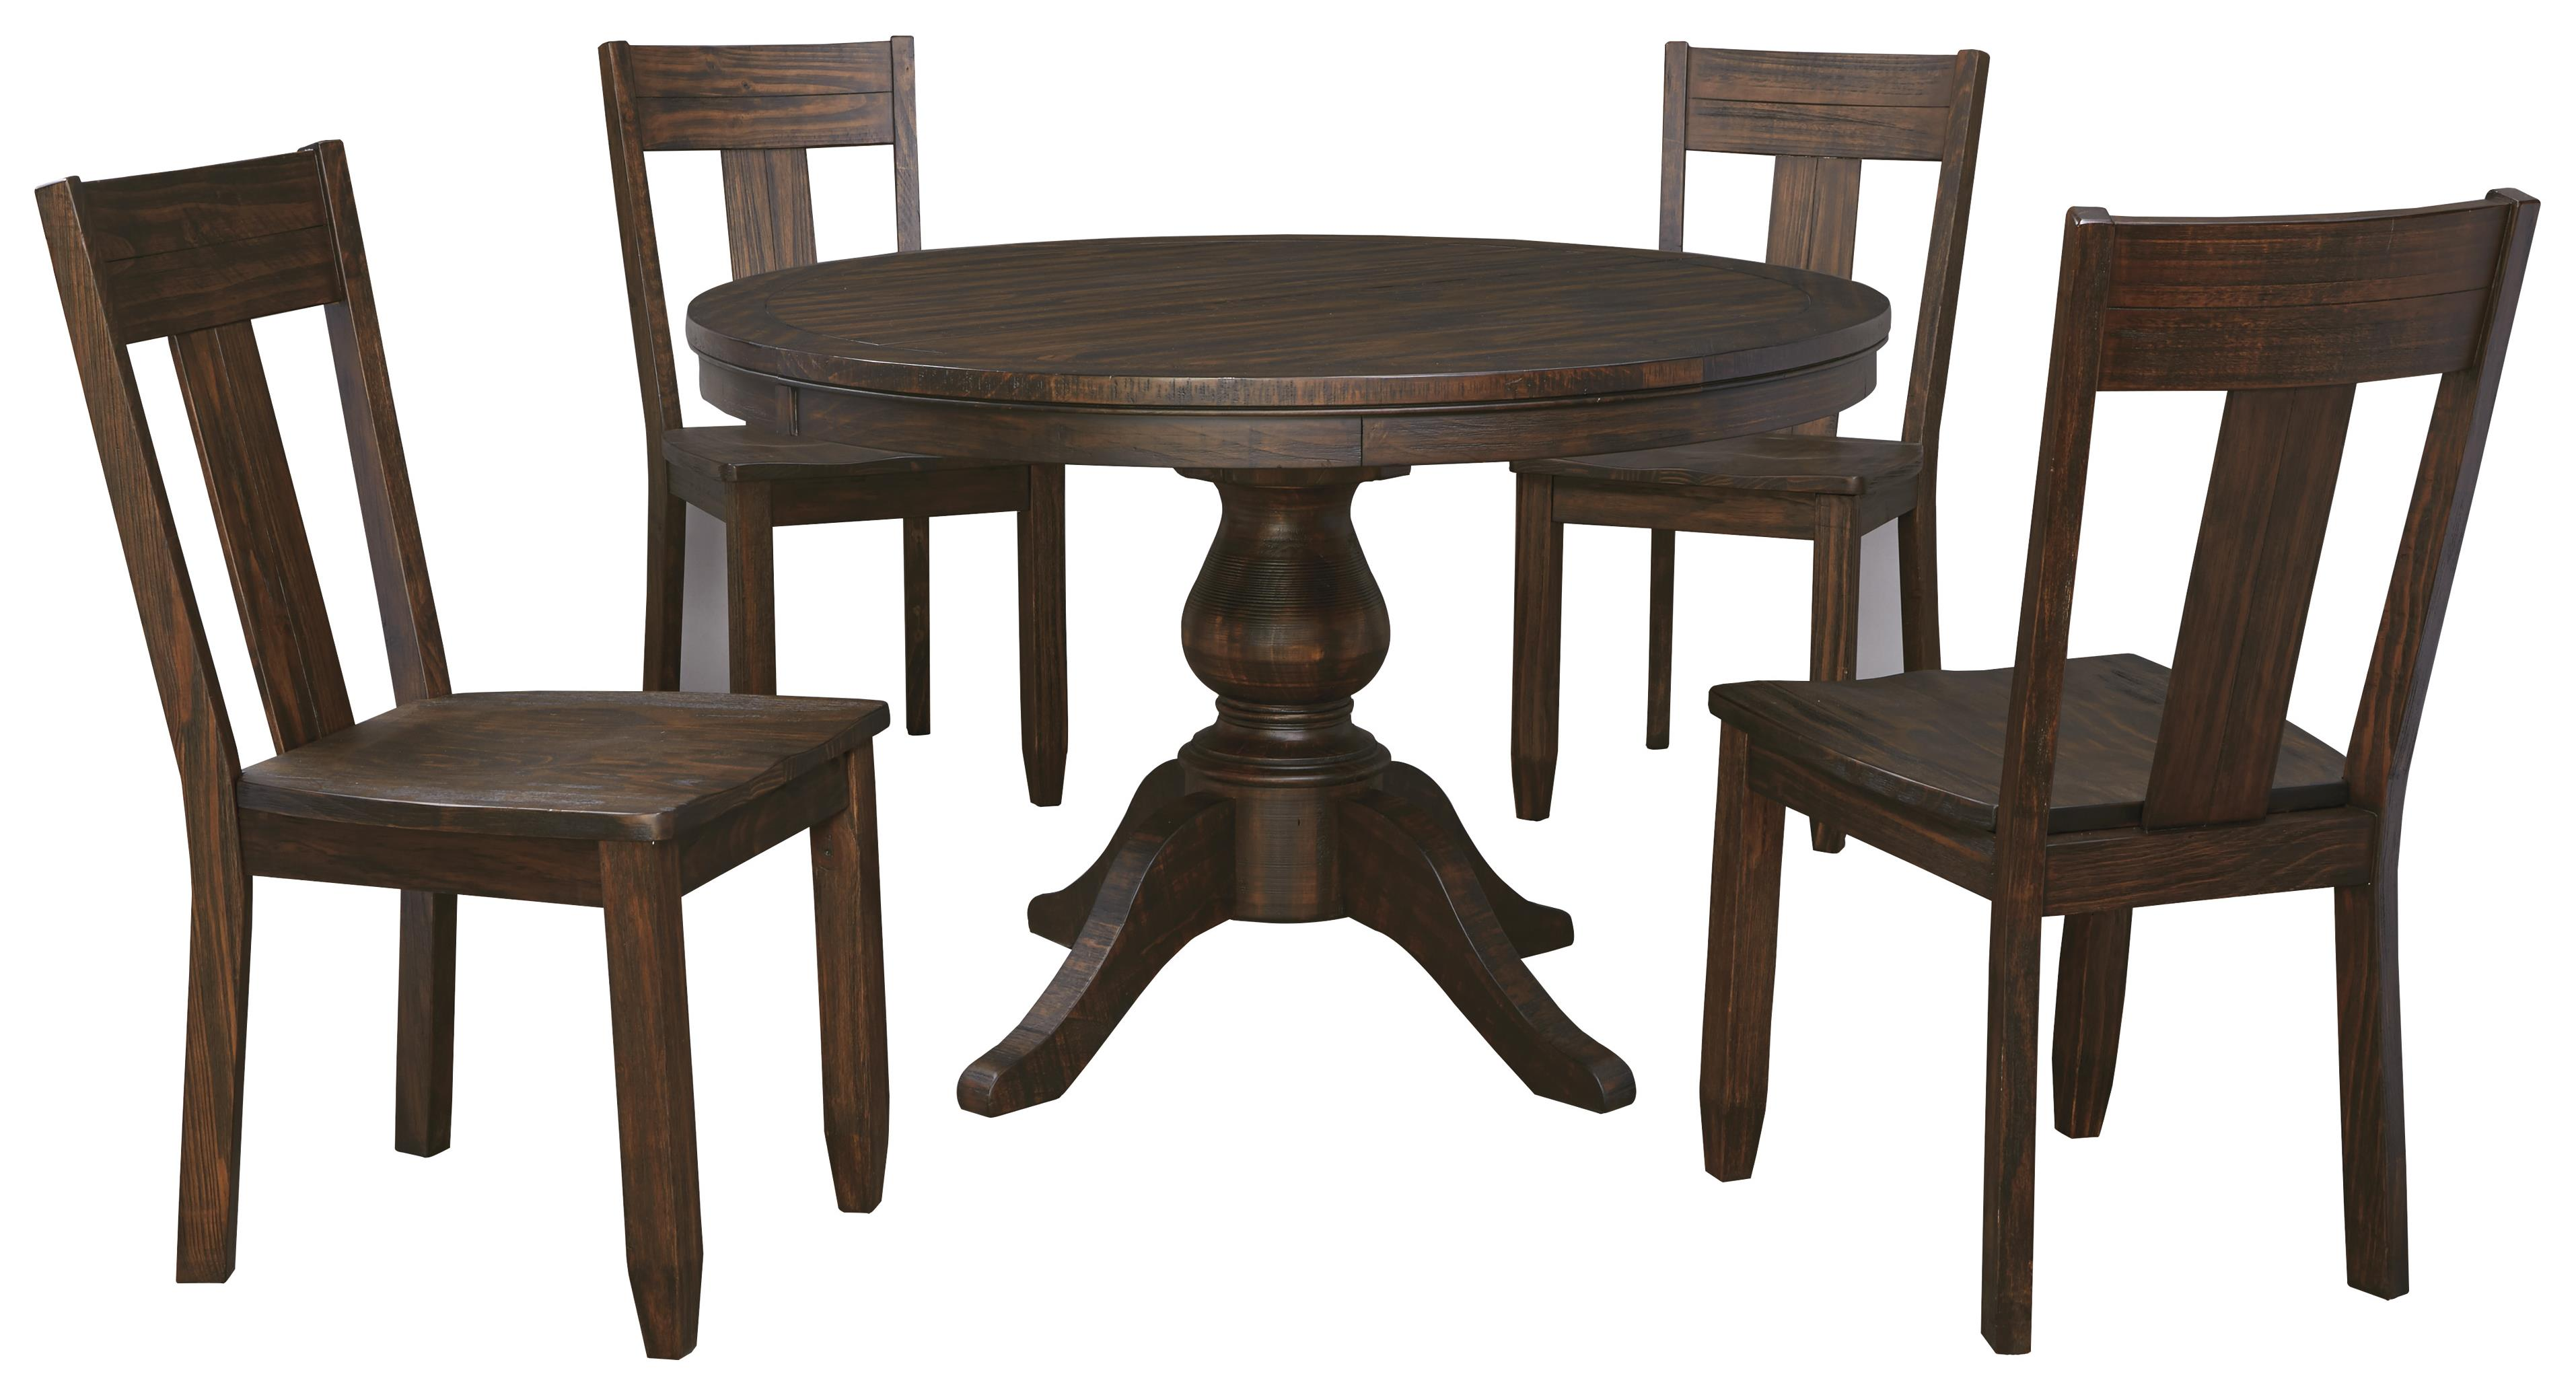 5-Piece Round Dining Table Set  sc 1 st  Wolf Furniture & 5-Piece Round Dining Table Set with Wood Seat Side Chairs by ...